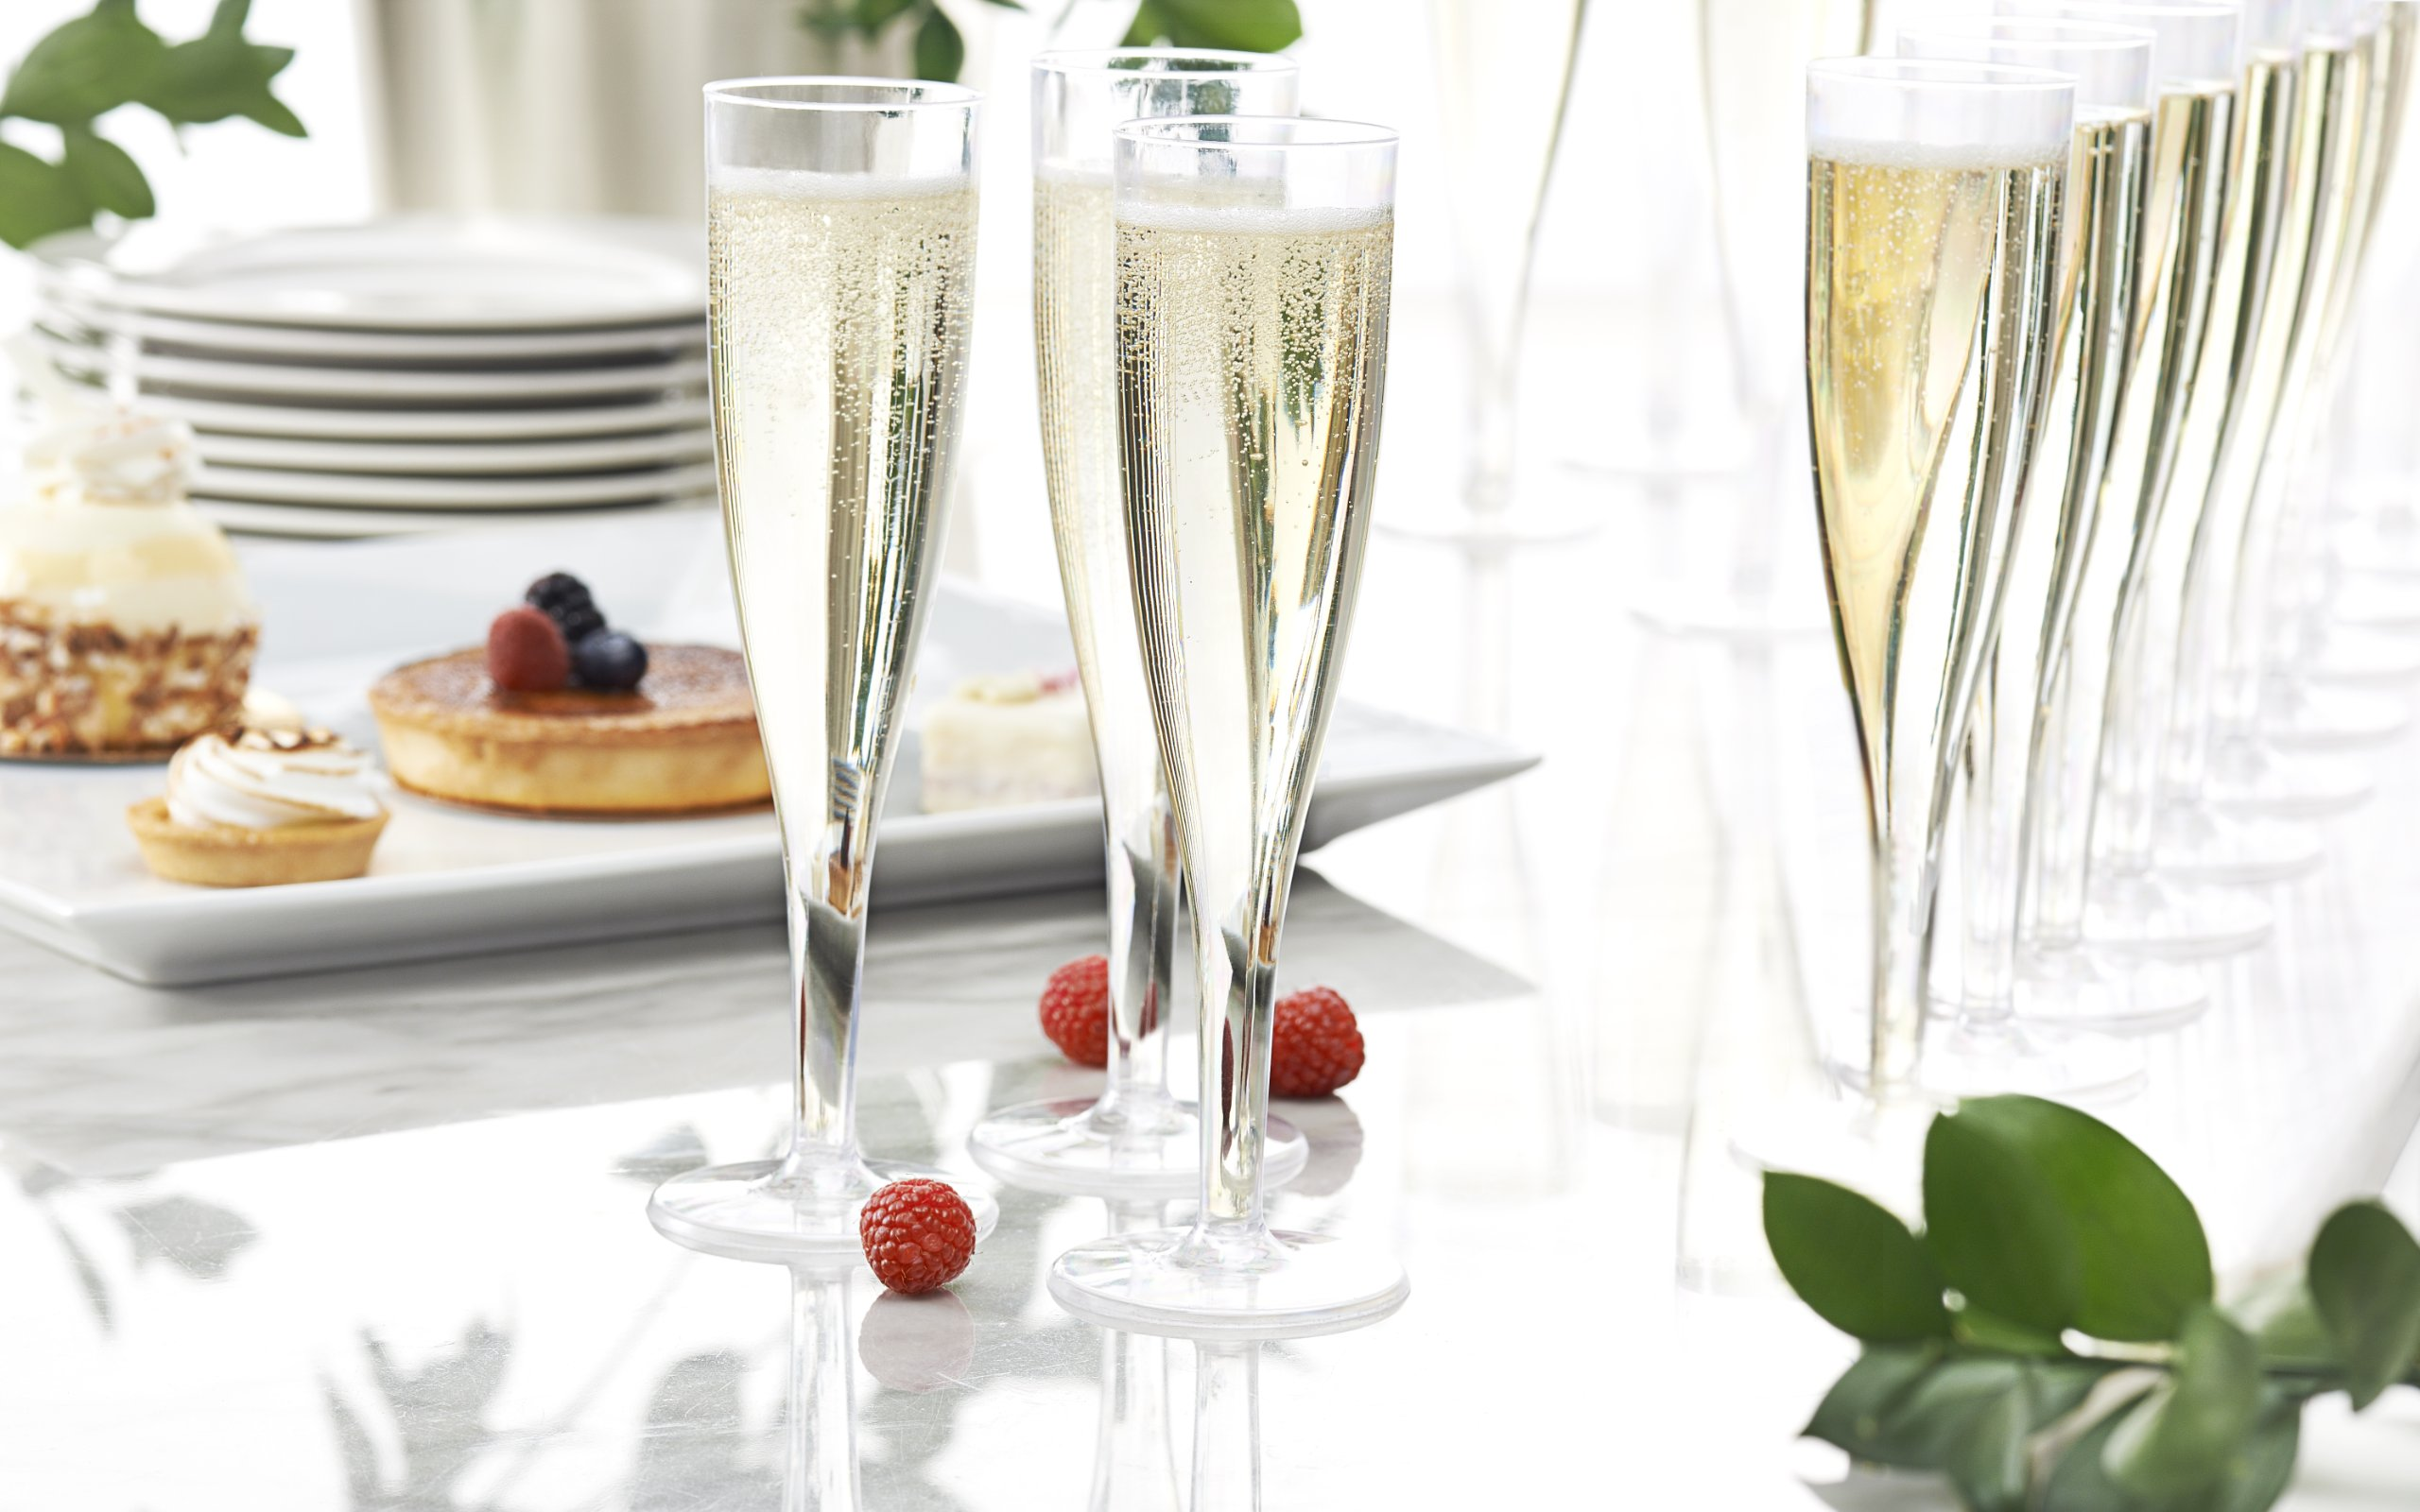 Party Essentials Hard Plastic 1 Piece Champagne Flute, 5-Ounce Capacity, Clear (Case of 100) by Party Essentials (Image #3)